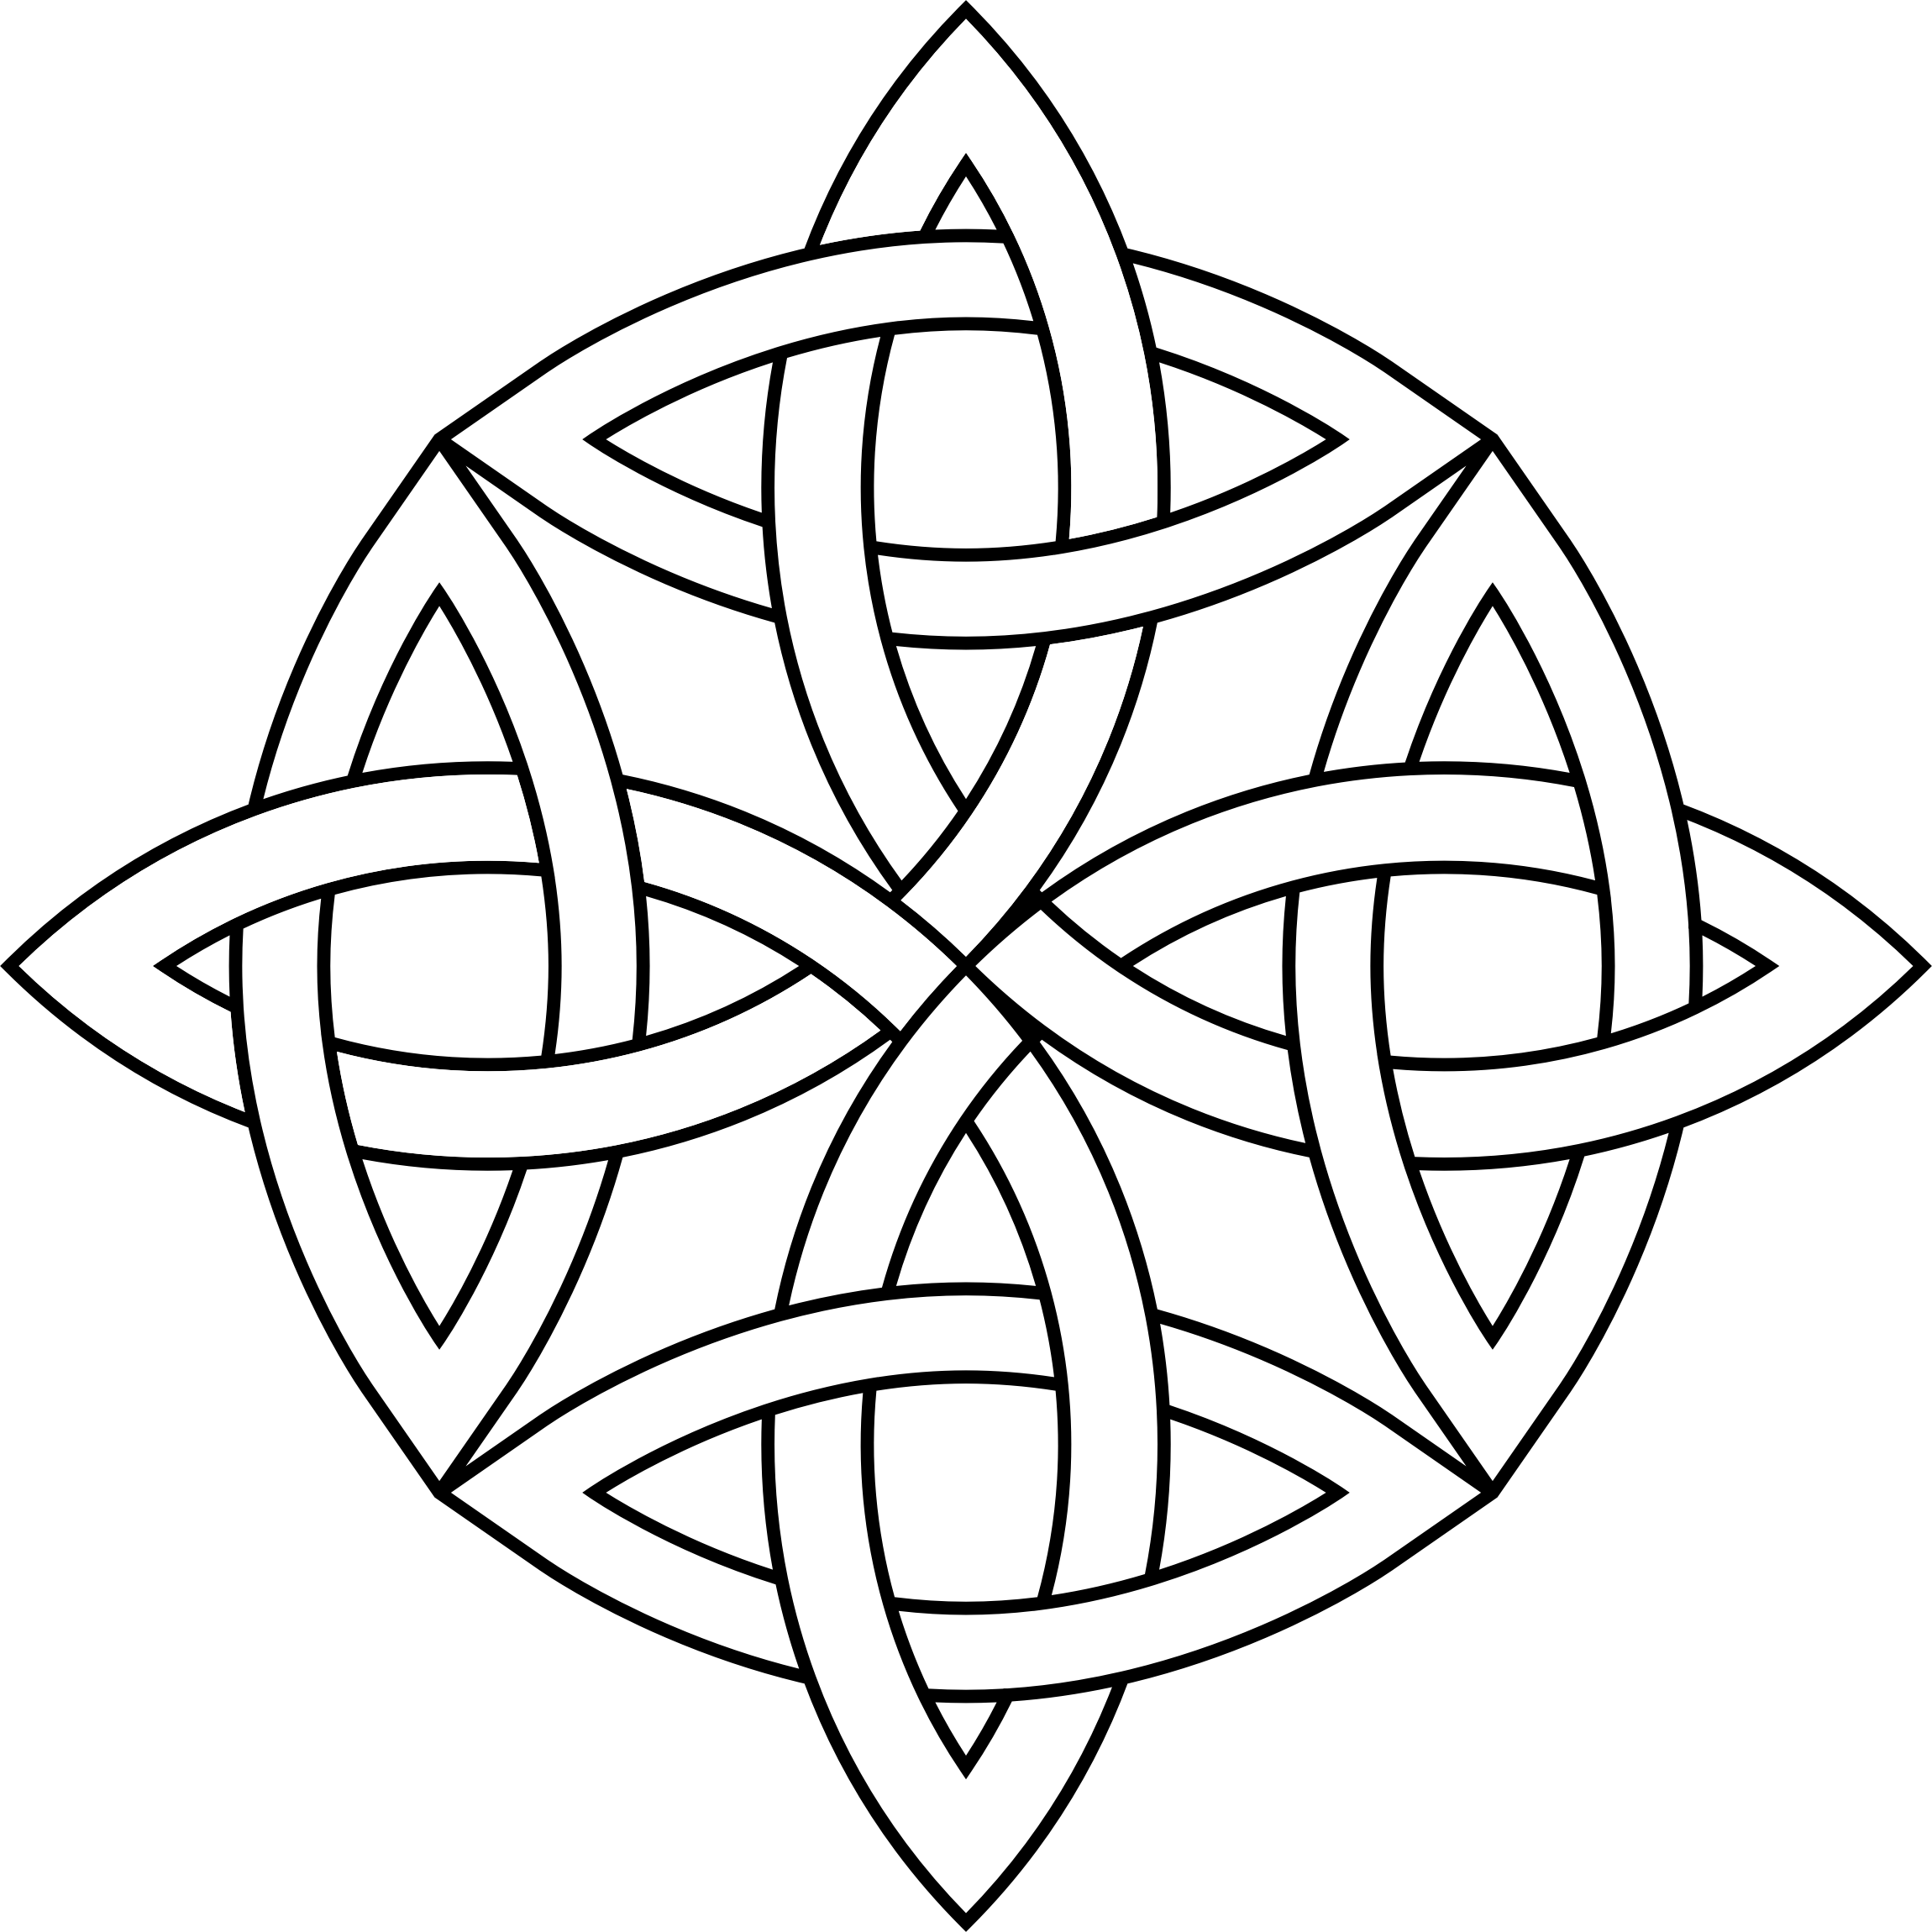 celtic patterns celtic knots drawing at getdrawings free download celtic patterns